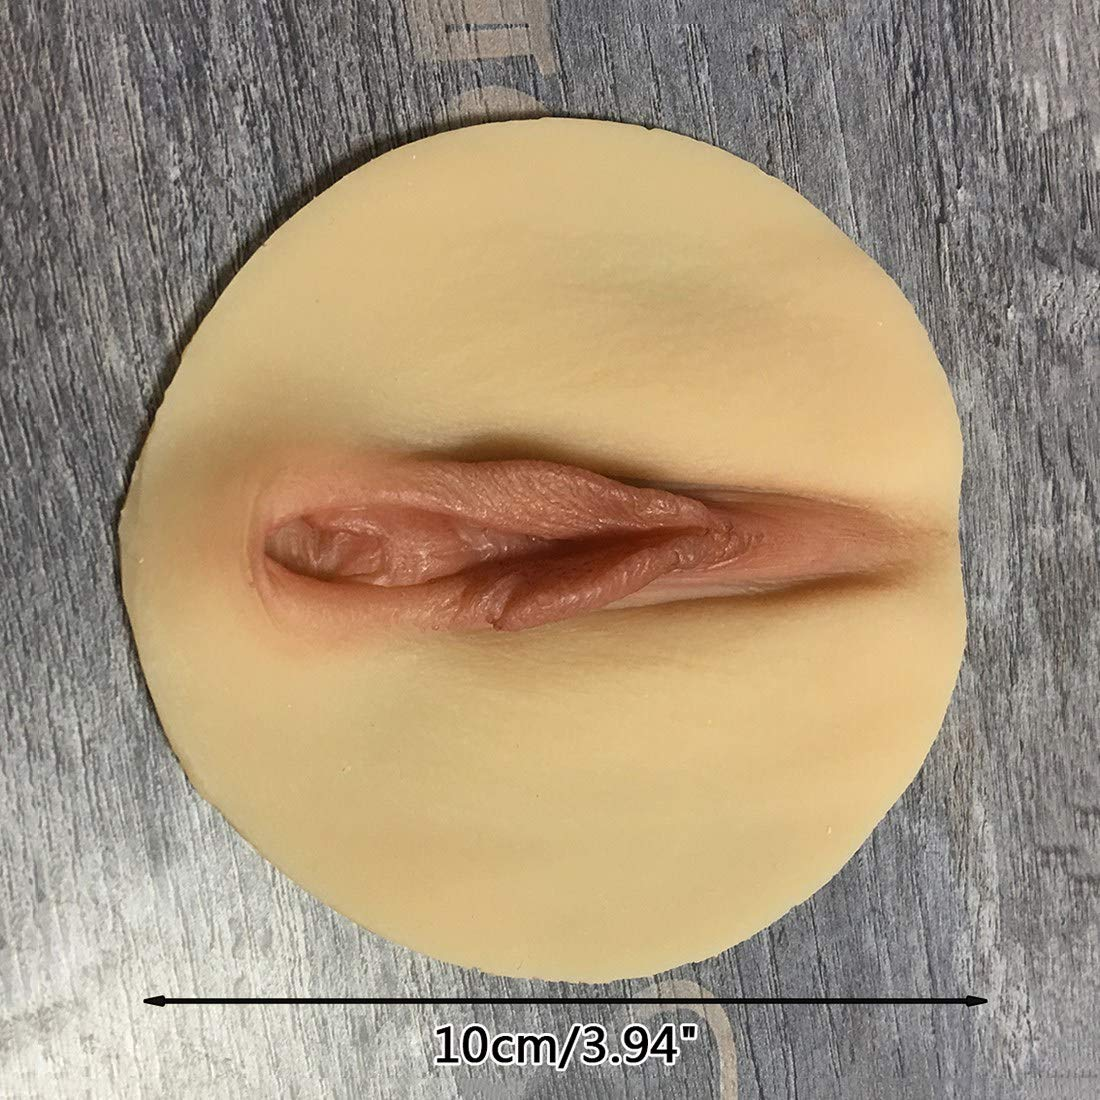 Fake Vagina Photos, Images Pictures On Alibaba